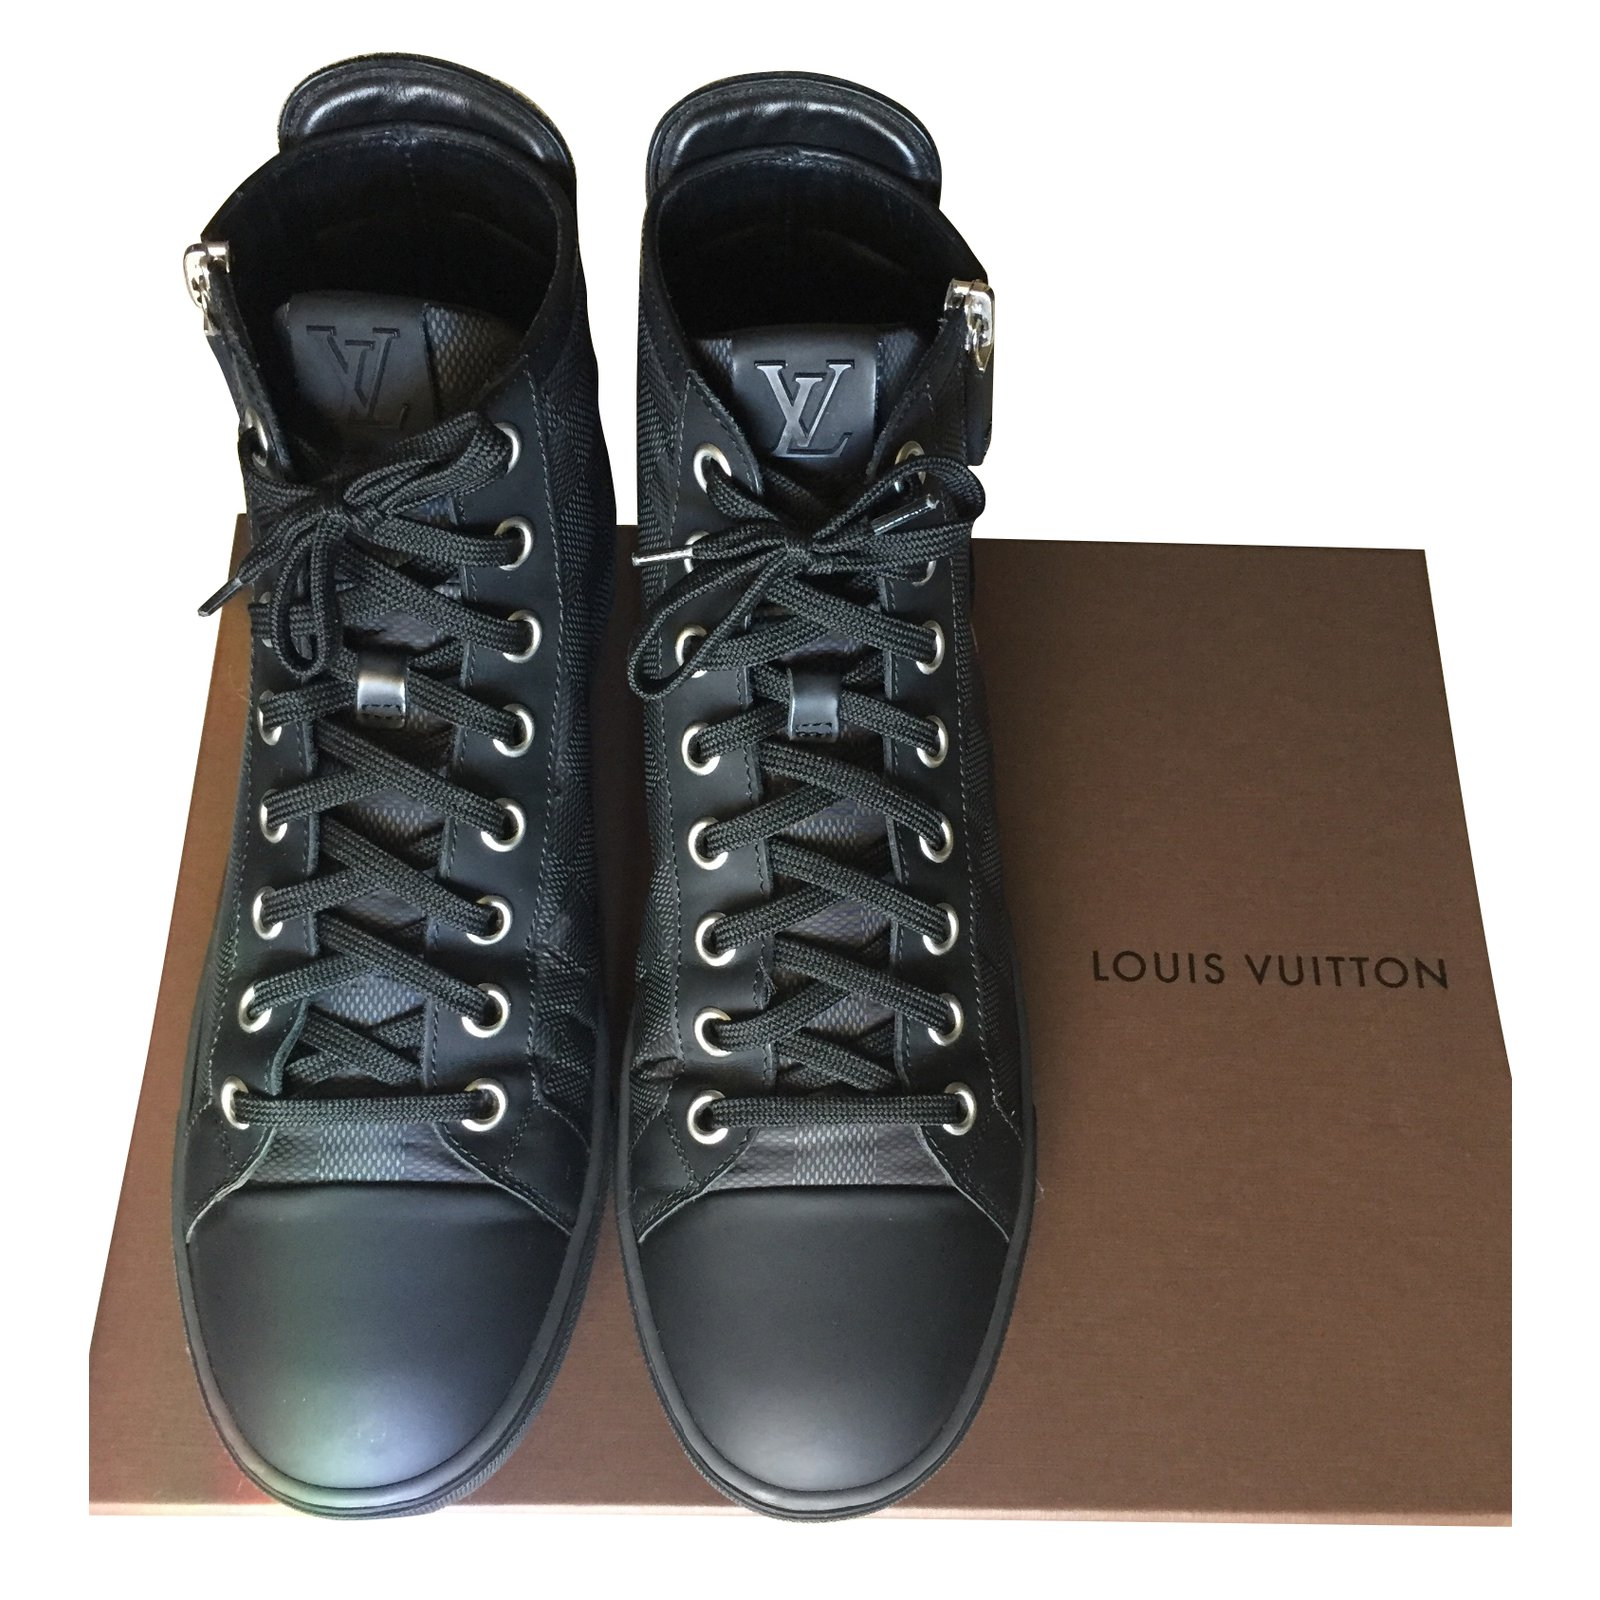 Louis Vuitton Sneakers Sneakers Leather Black ref.63142 - Joli Closet 8aa5f816e5a